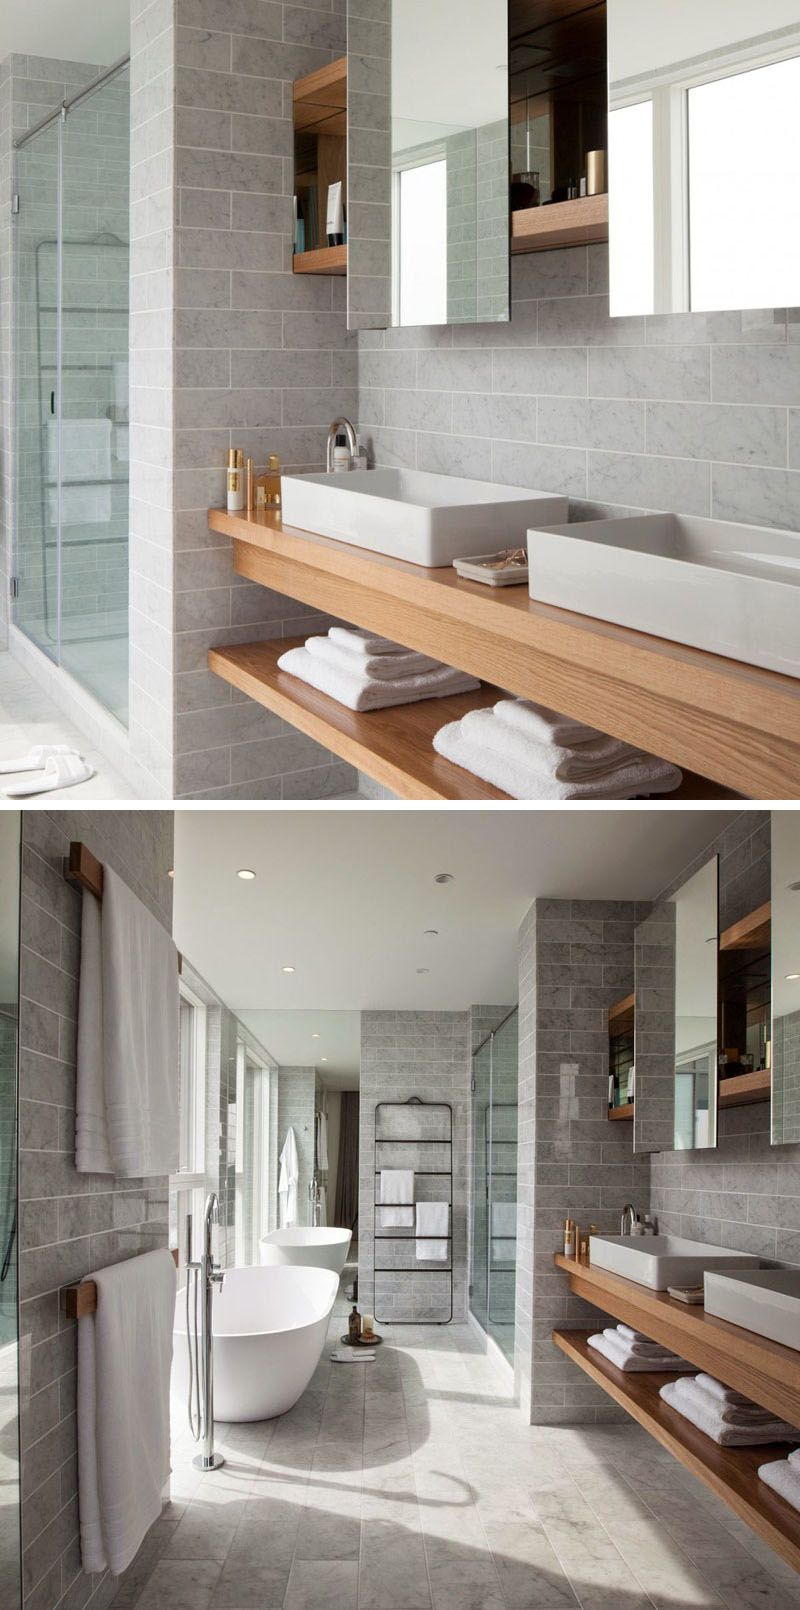 15 Examples Of Bathroom Vanities That Have Open Shelving Floating Bathroom Vanities Bathroom Vanities Without Tops Custom Bathroom